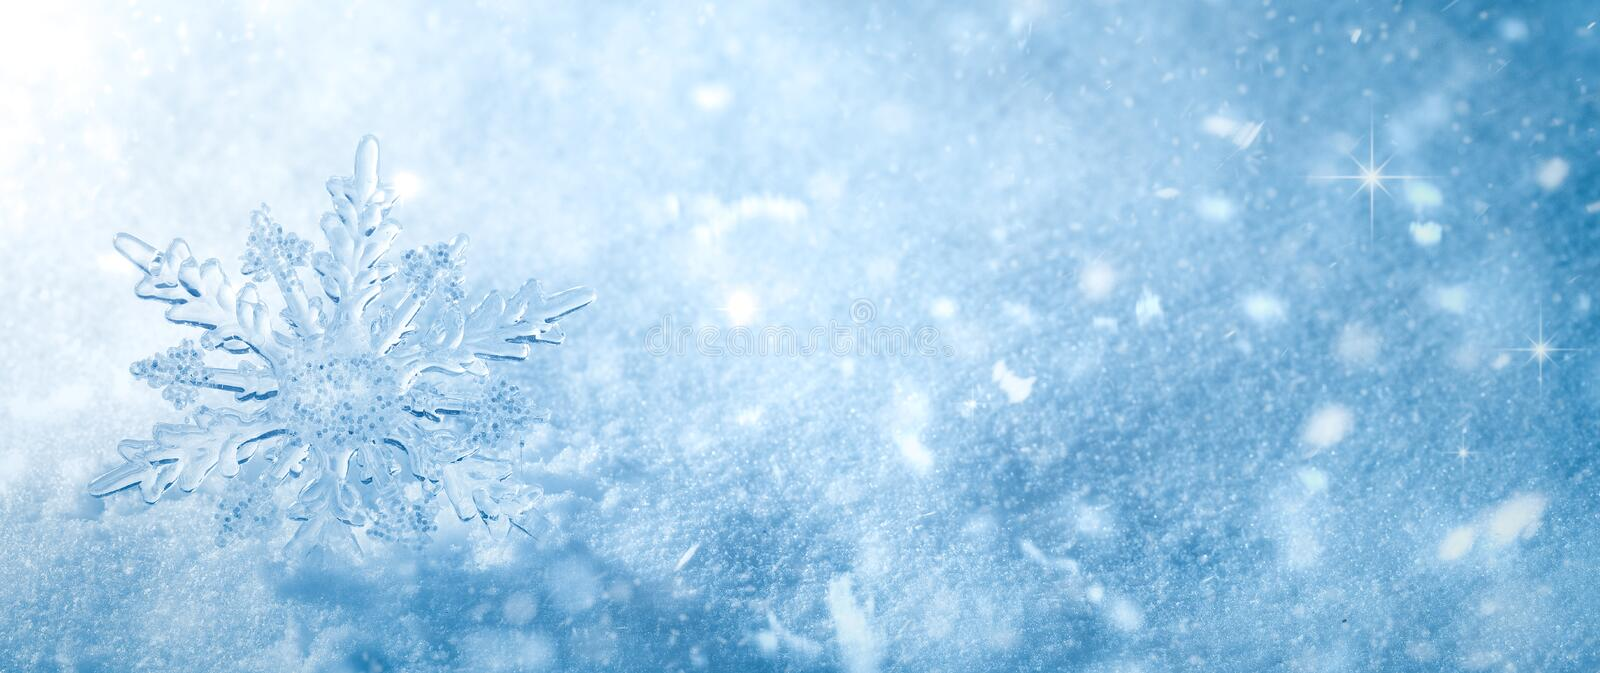 Winter Schnee Background lizenzfreie stockbilder